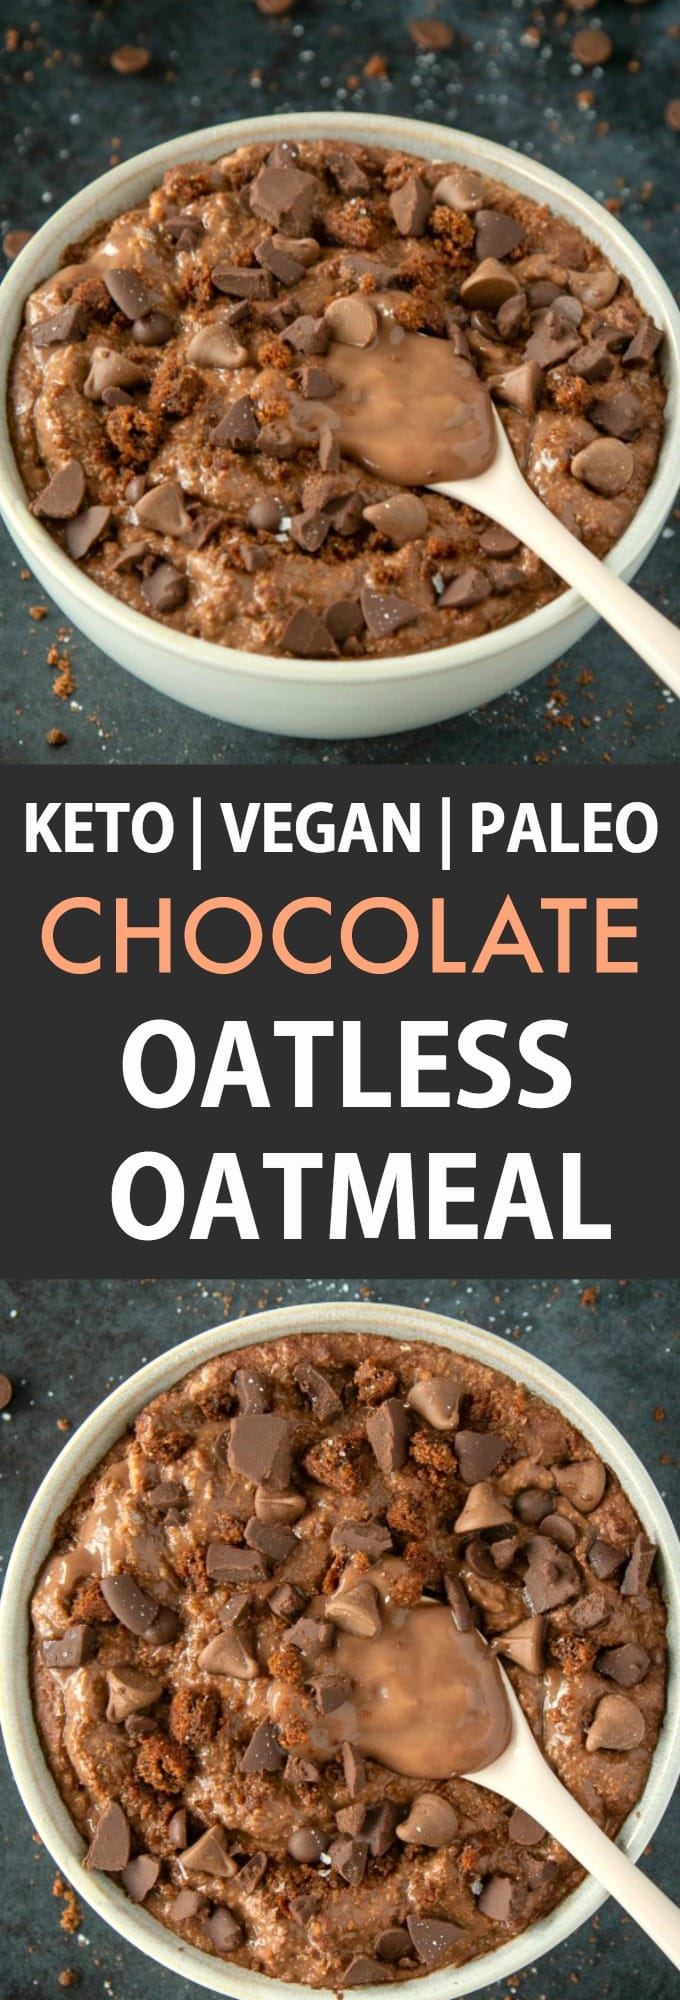 A collage of two bowls of keto and low carb chocolate oatless overnight oats